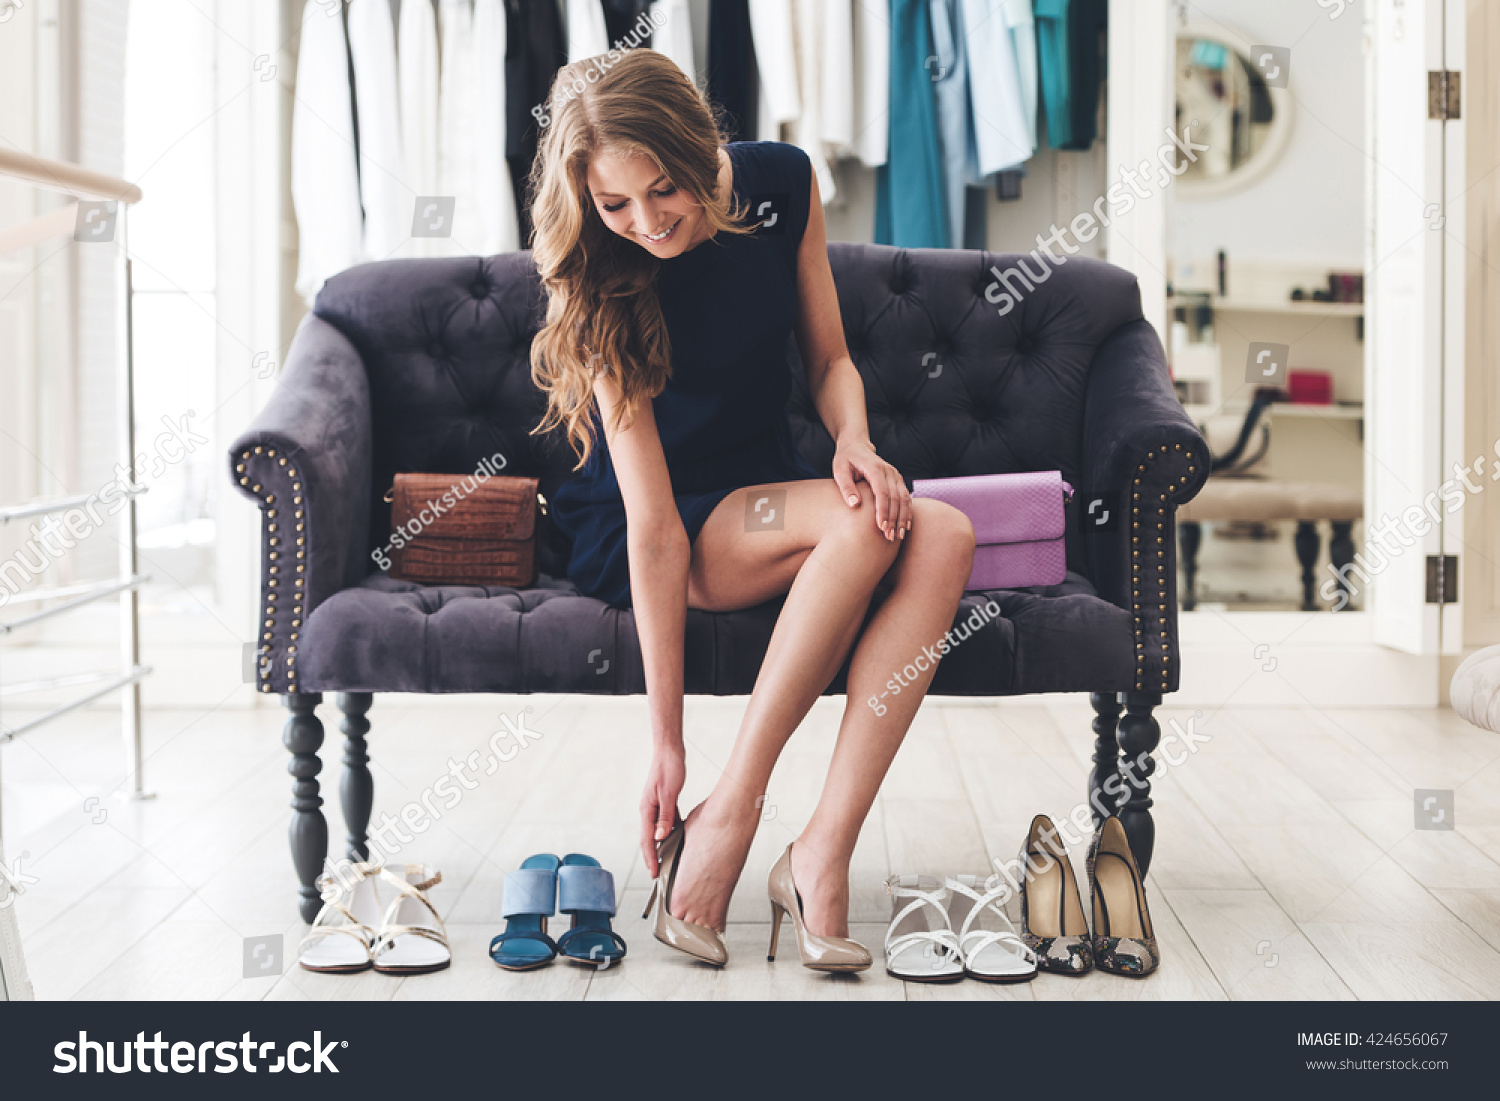 That is perfect pair! Beautiful young woman trying on high heel shoes while sitting on sofa at the shoe store #424656067